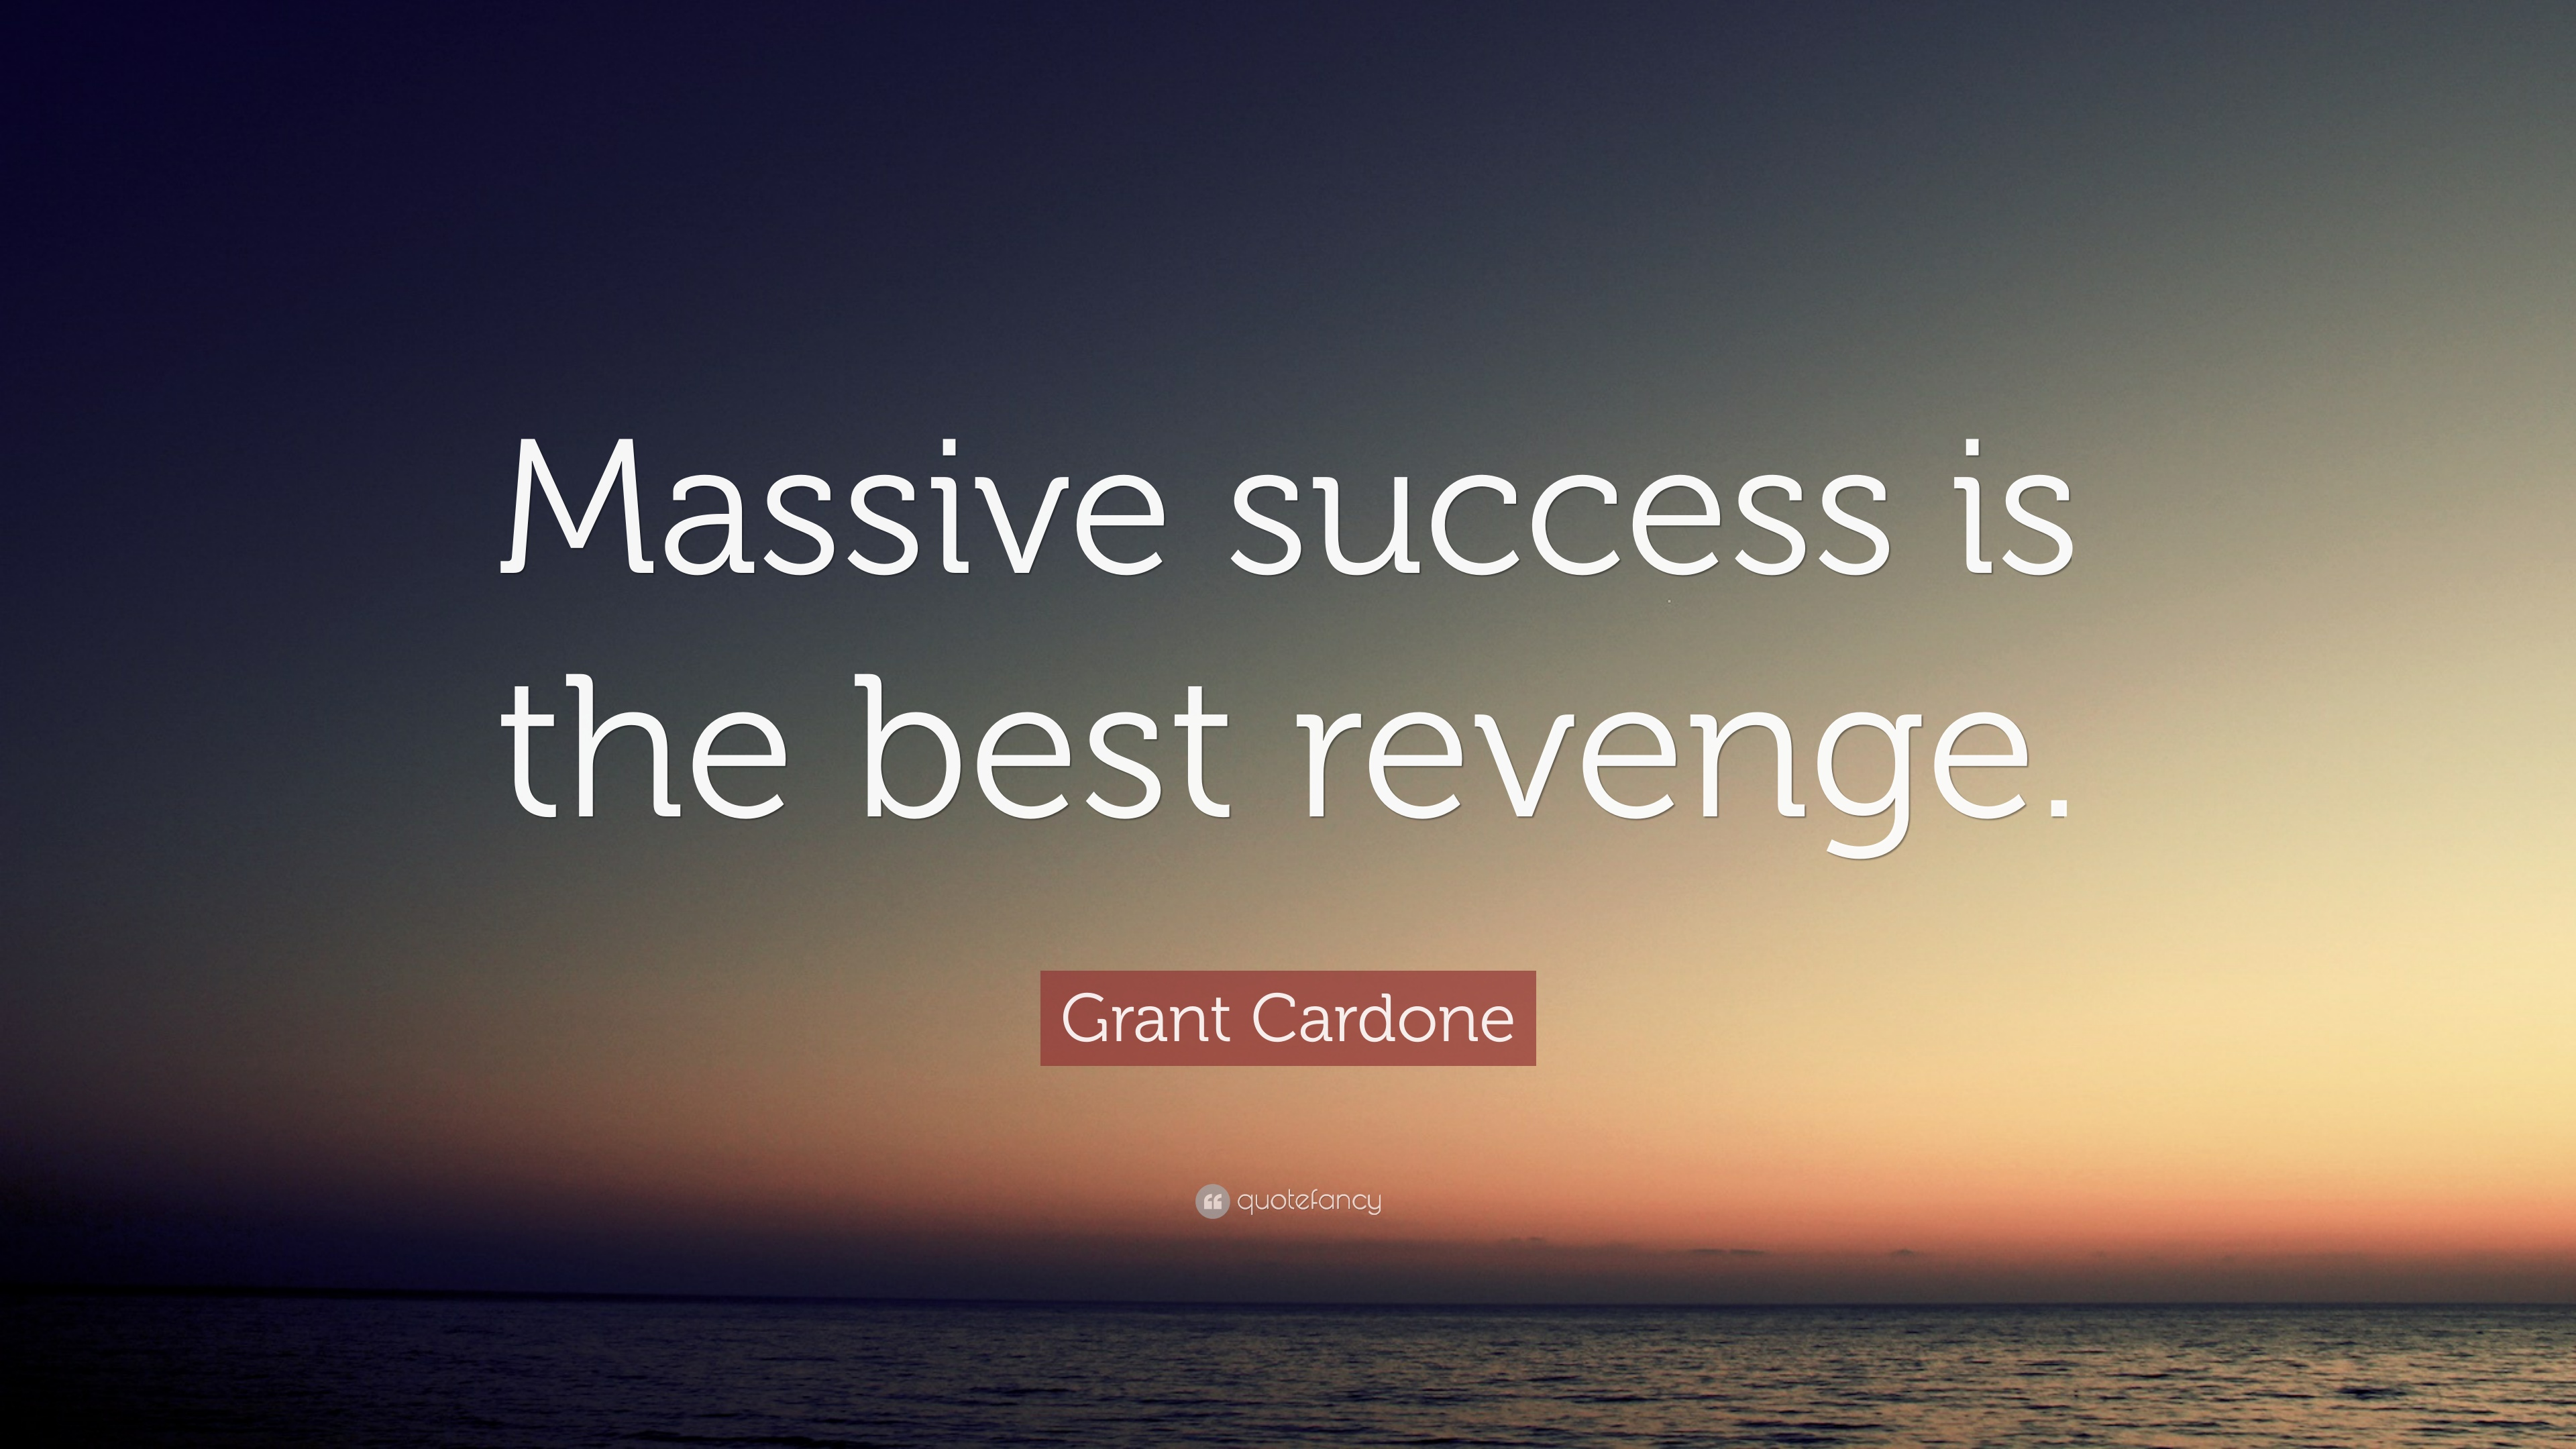 Grant Cardone Quote Massive Success Is The Best Revenge 12